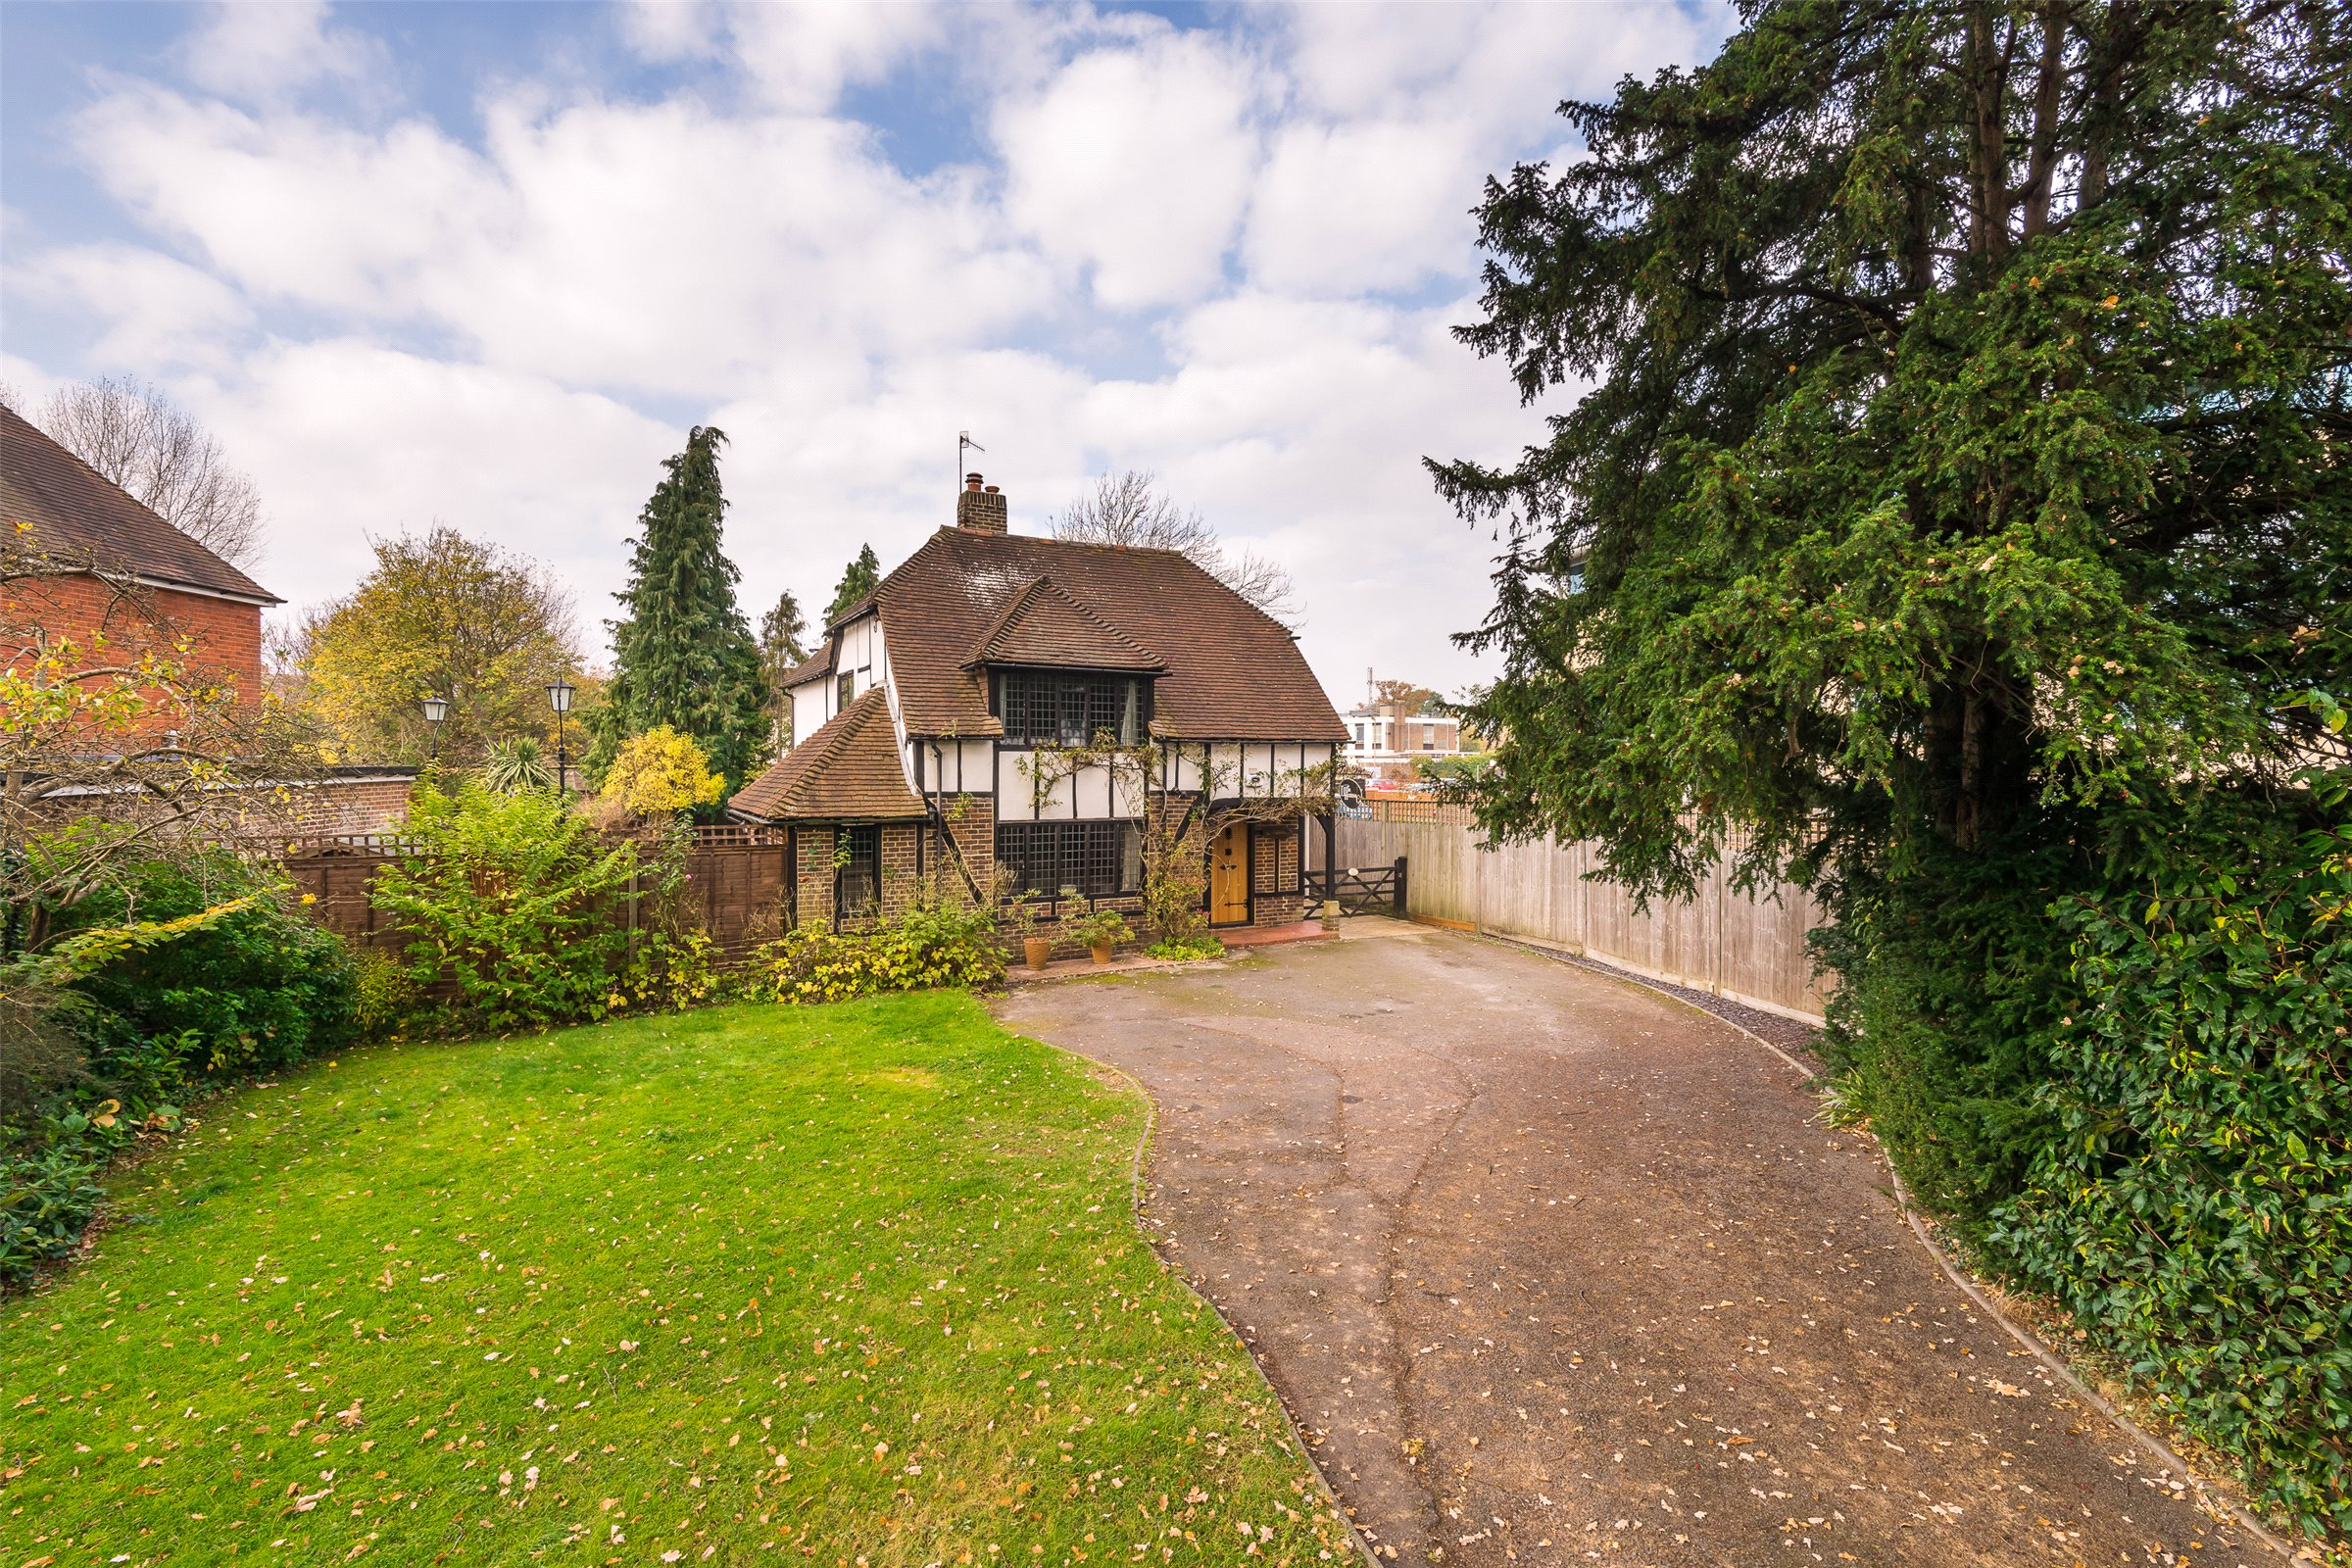 4 Bedrooms Detached House for sale in Massetts Road, Horley, Surrey, RH6